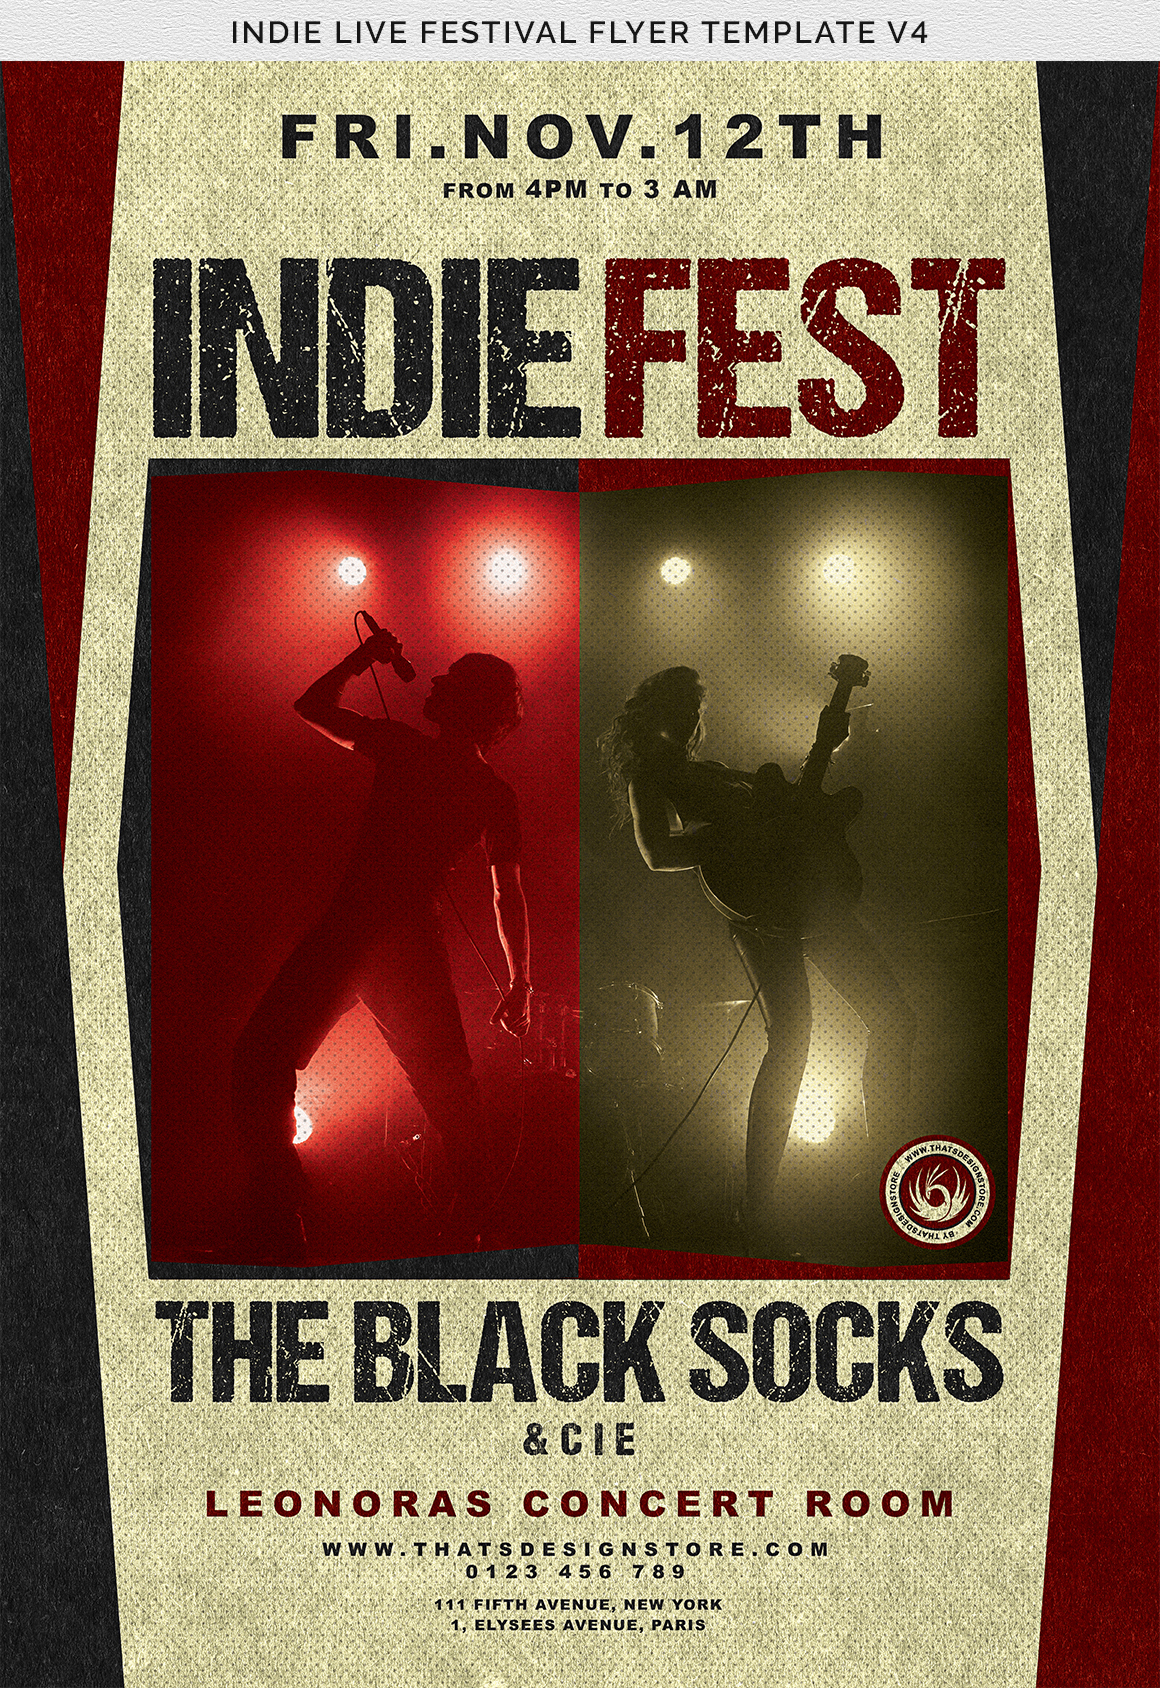 Indie Live Festival Flyer Template V4 example image 8